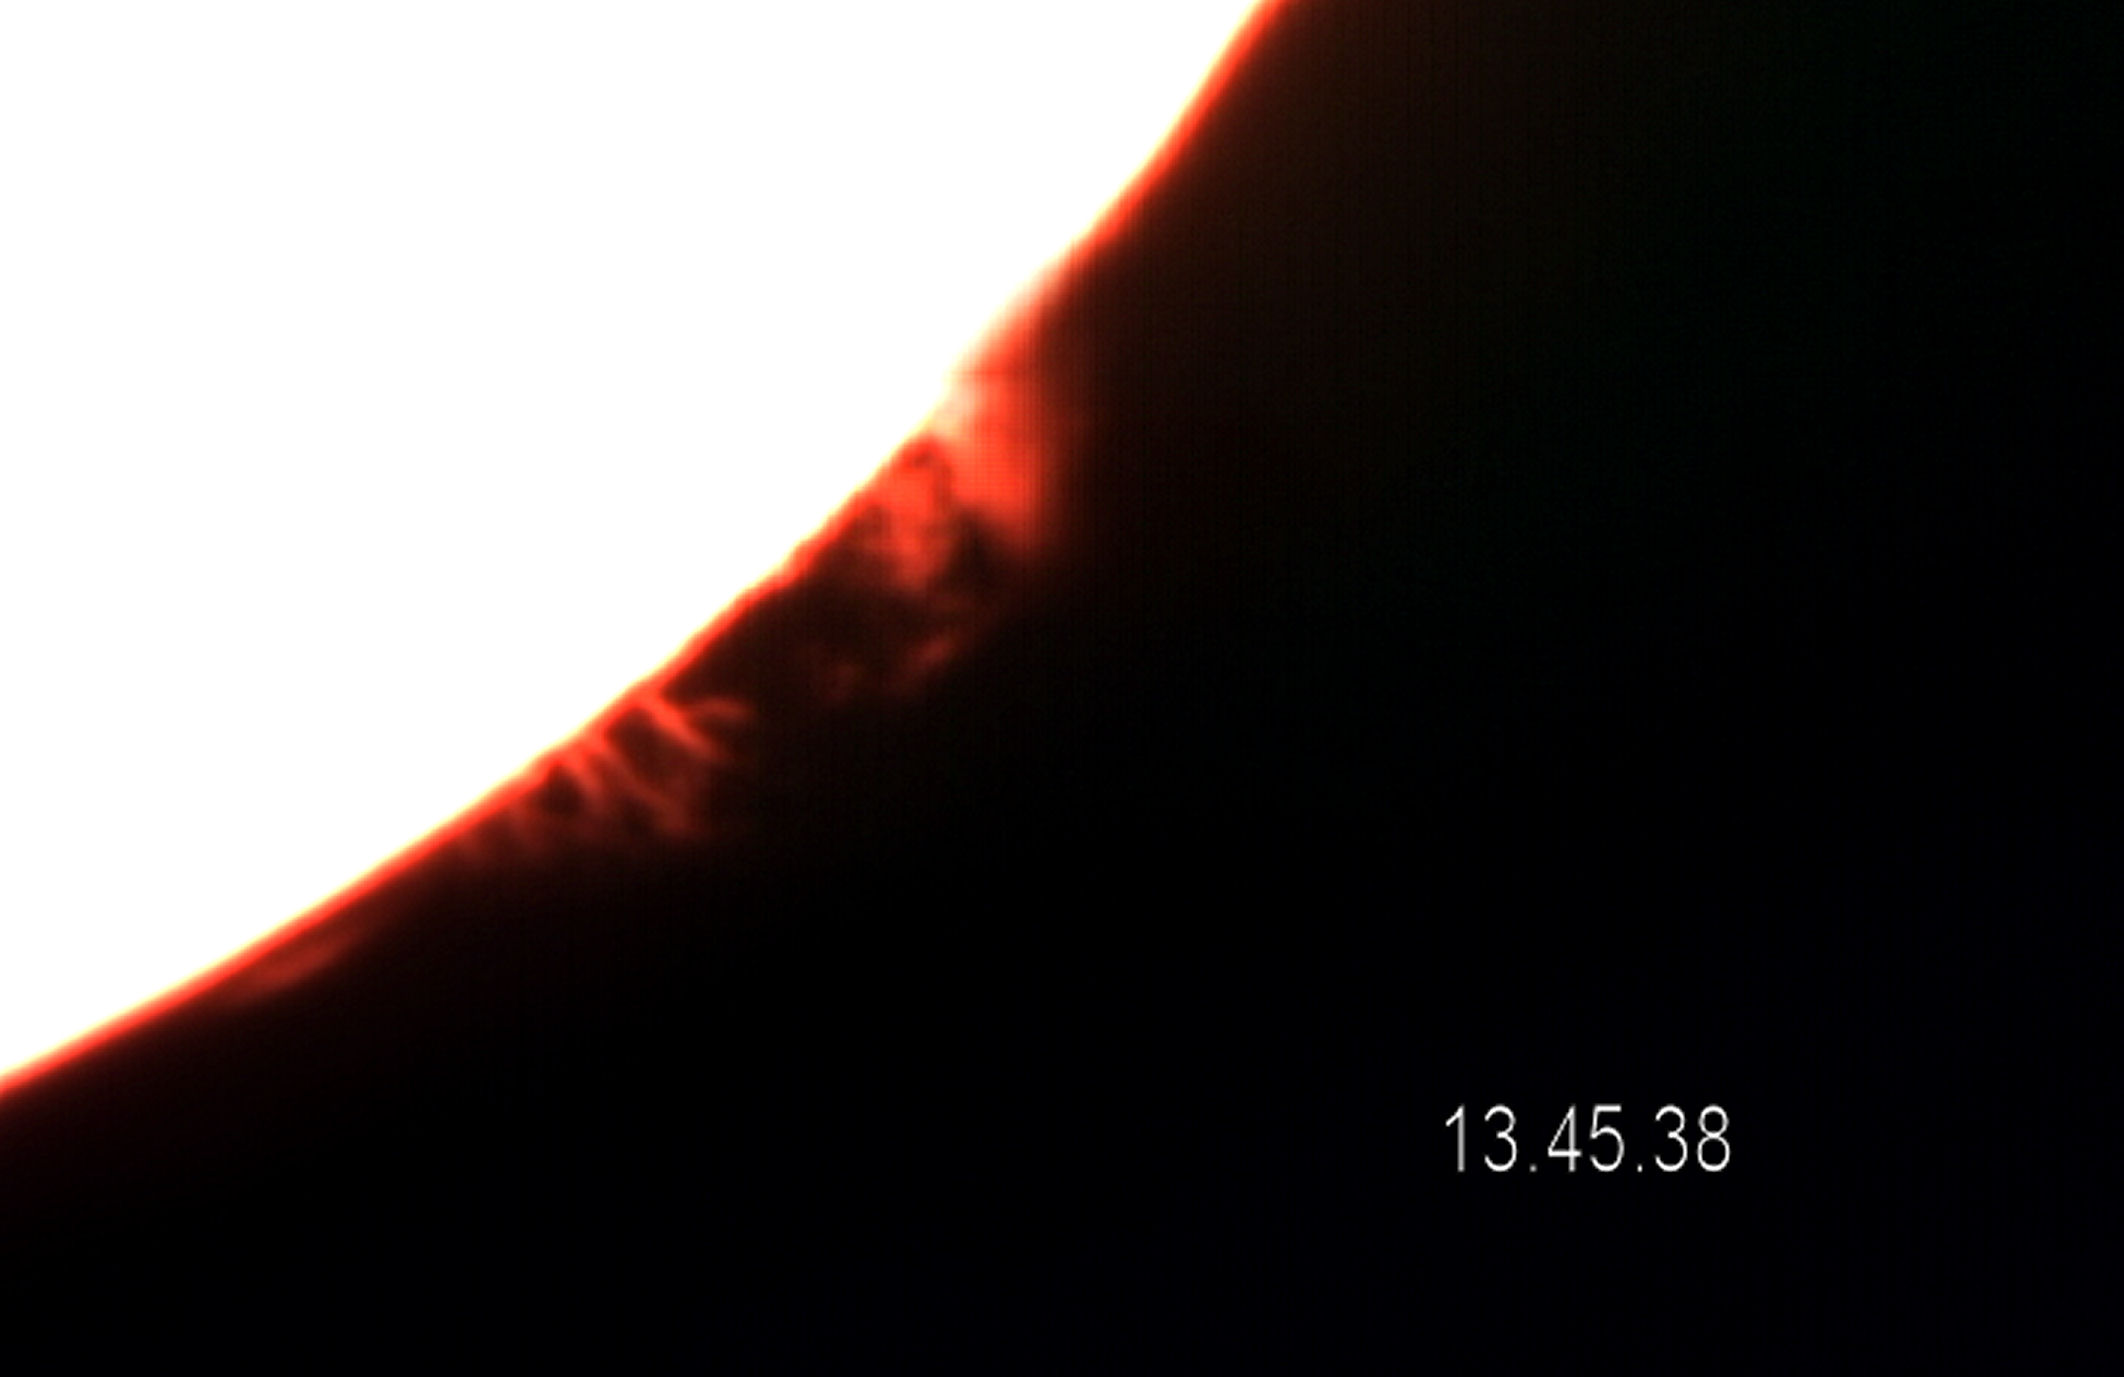 Solar Prominence By T Hayes 7.09.2015. Lunt 35mm H-A telescope with 2xBarlow, Celestron nexstar 5 camera.  10 second movie converted in Virtual Dub and then processed in aviStack